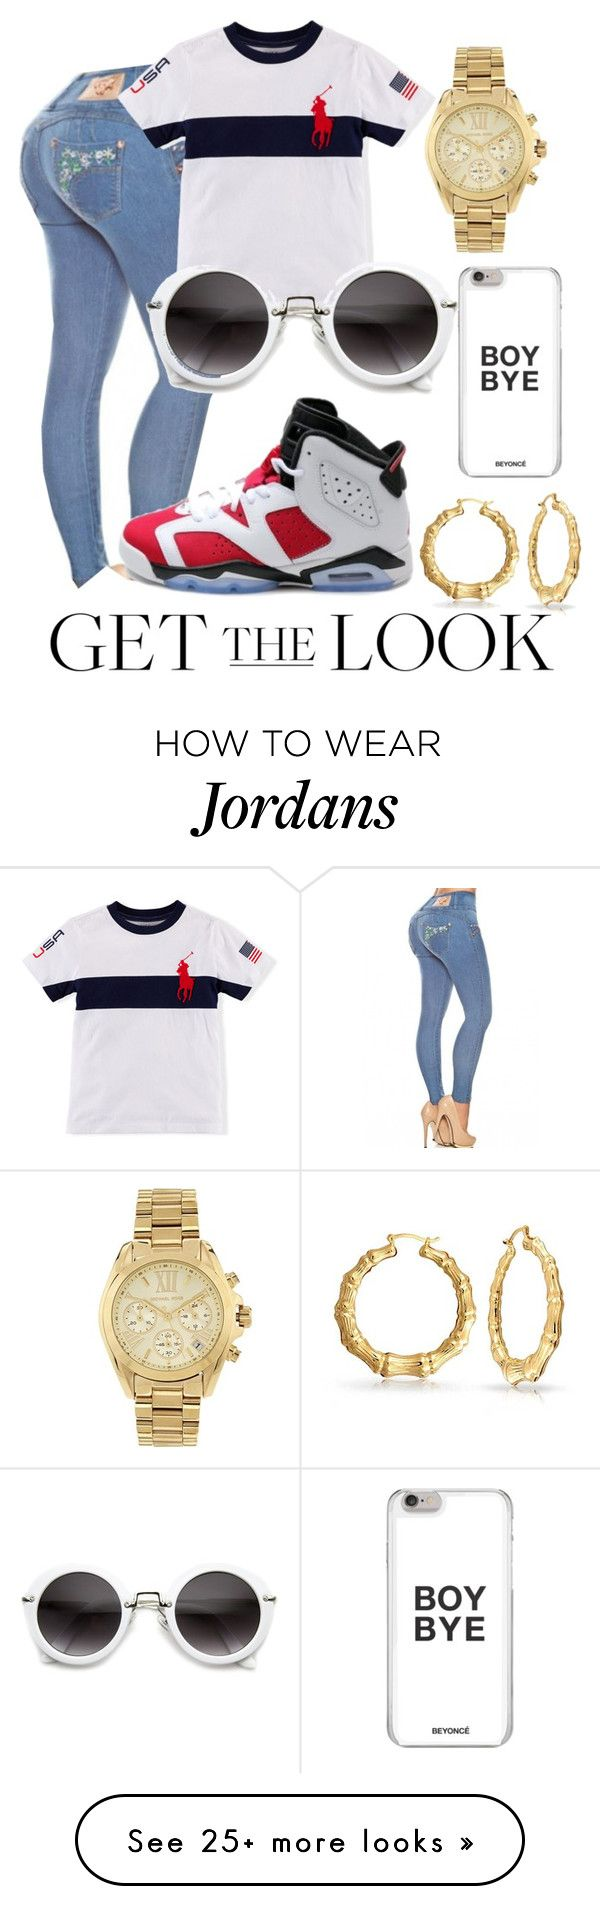 """Get the look"" by couture-channel on Polyvore featuring NIKE, Michael Kors, Bling Jewelry, GetTheLook and airportstyle"